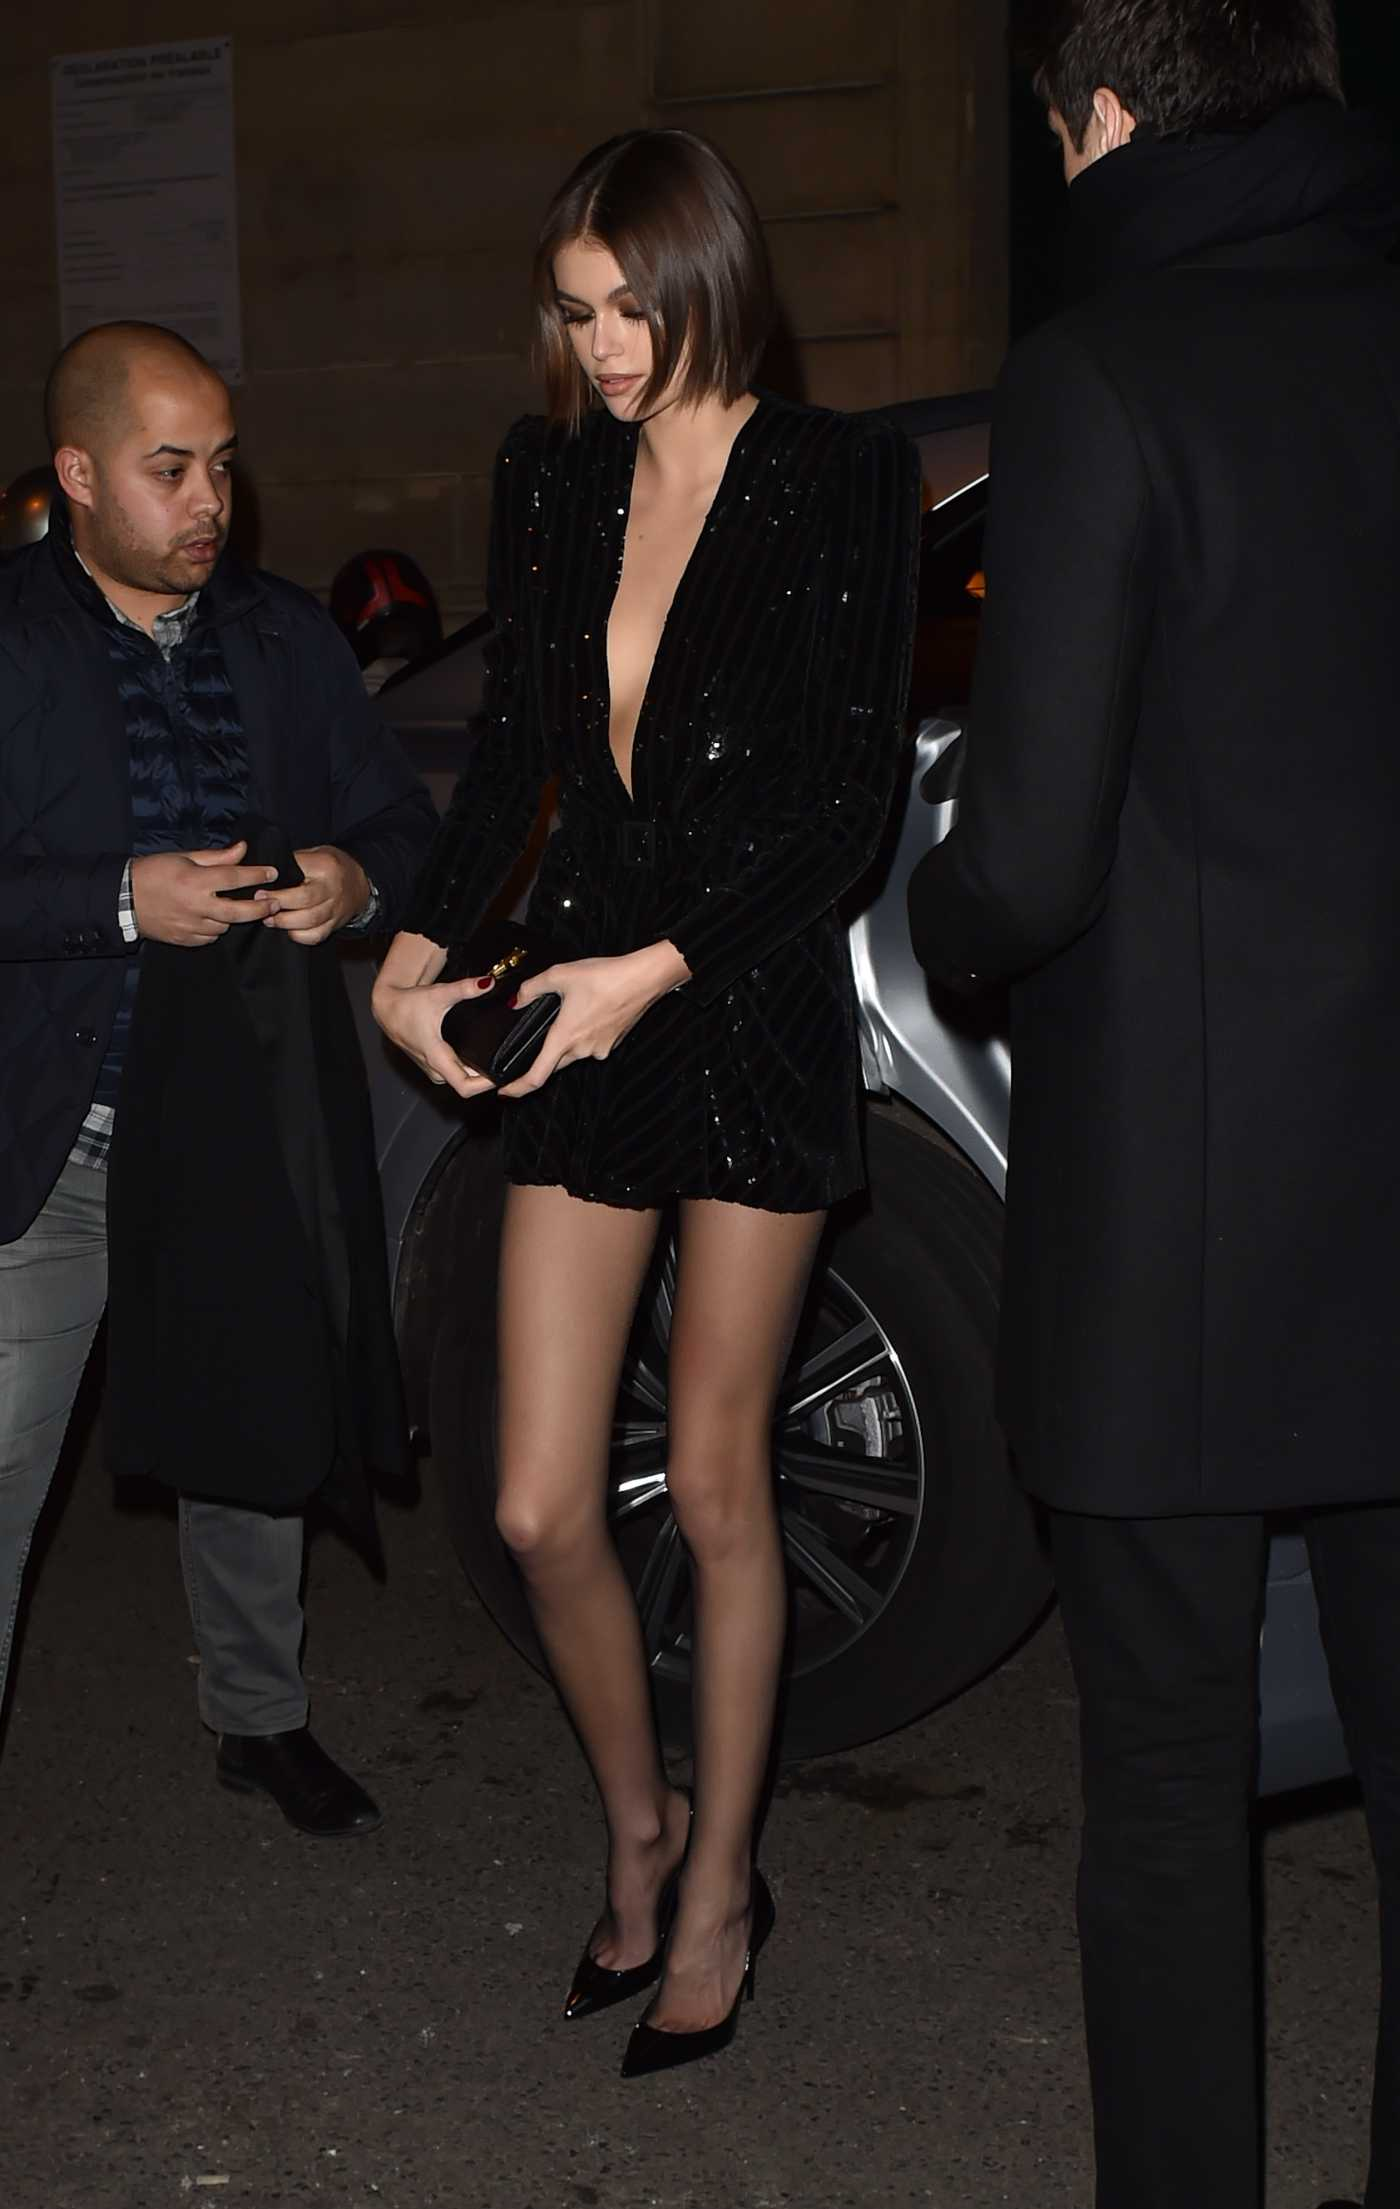 Kaia Gerber in a Black Dress Arrives at the Yves Saint Laurent Dinner Party in Paris 02/27/2020